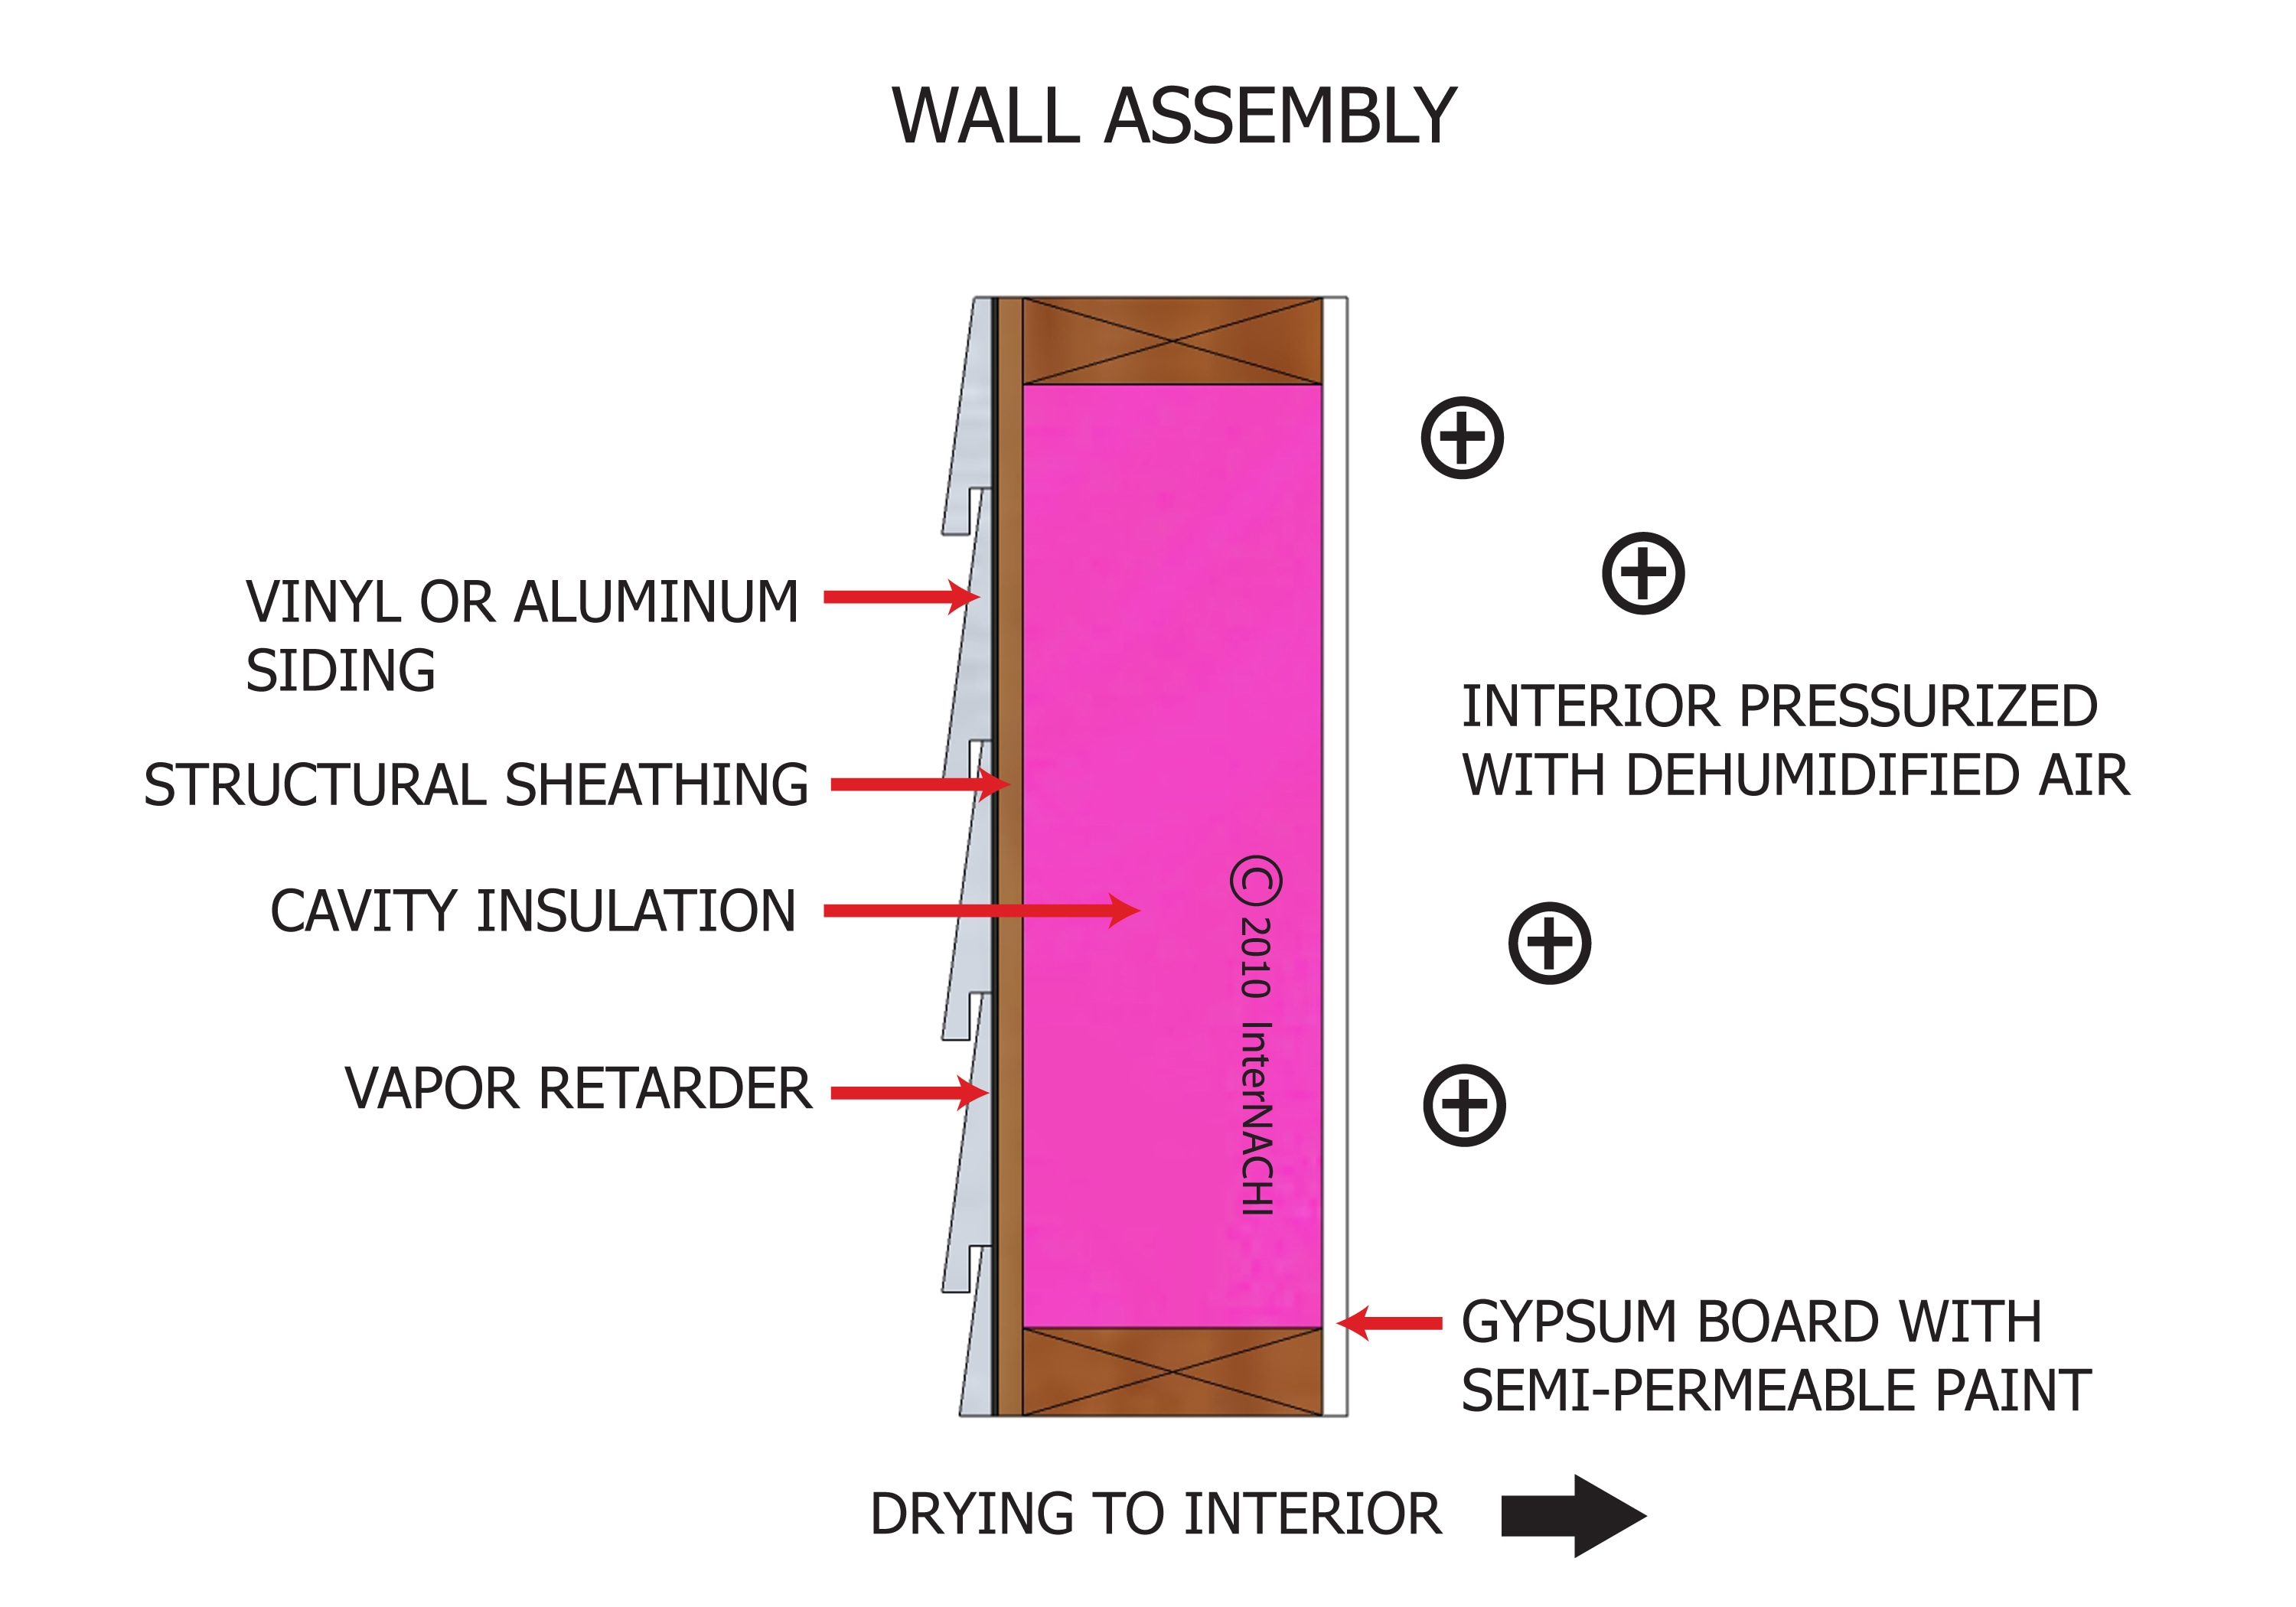 Wall assembly.